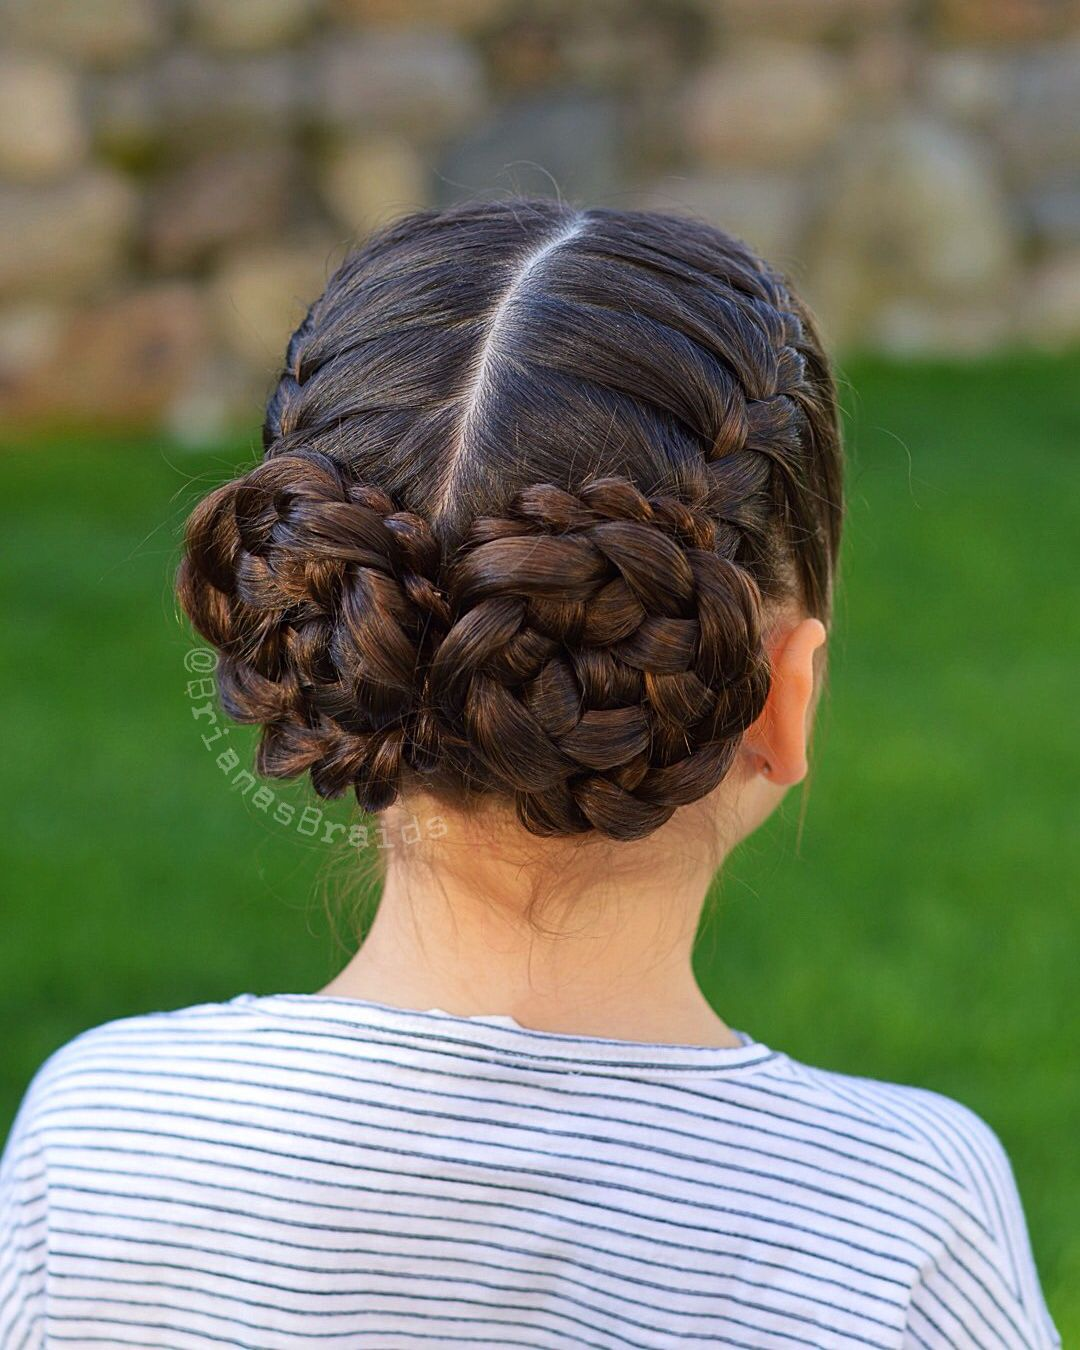 french braids into flower buns for field trip today. have a